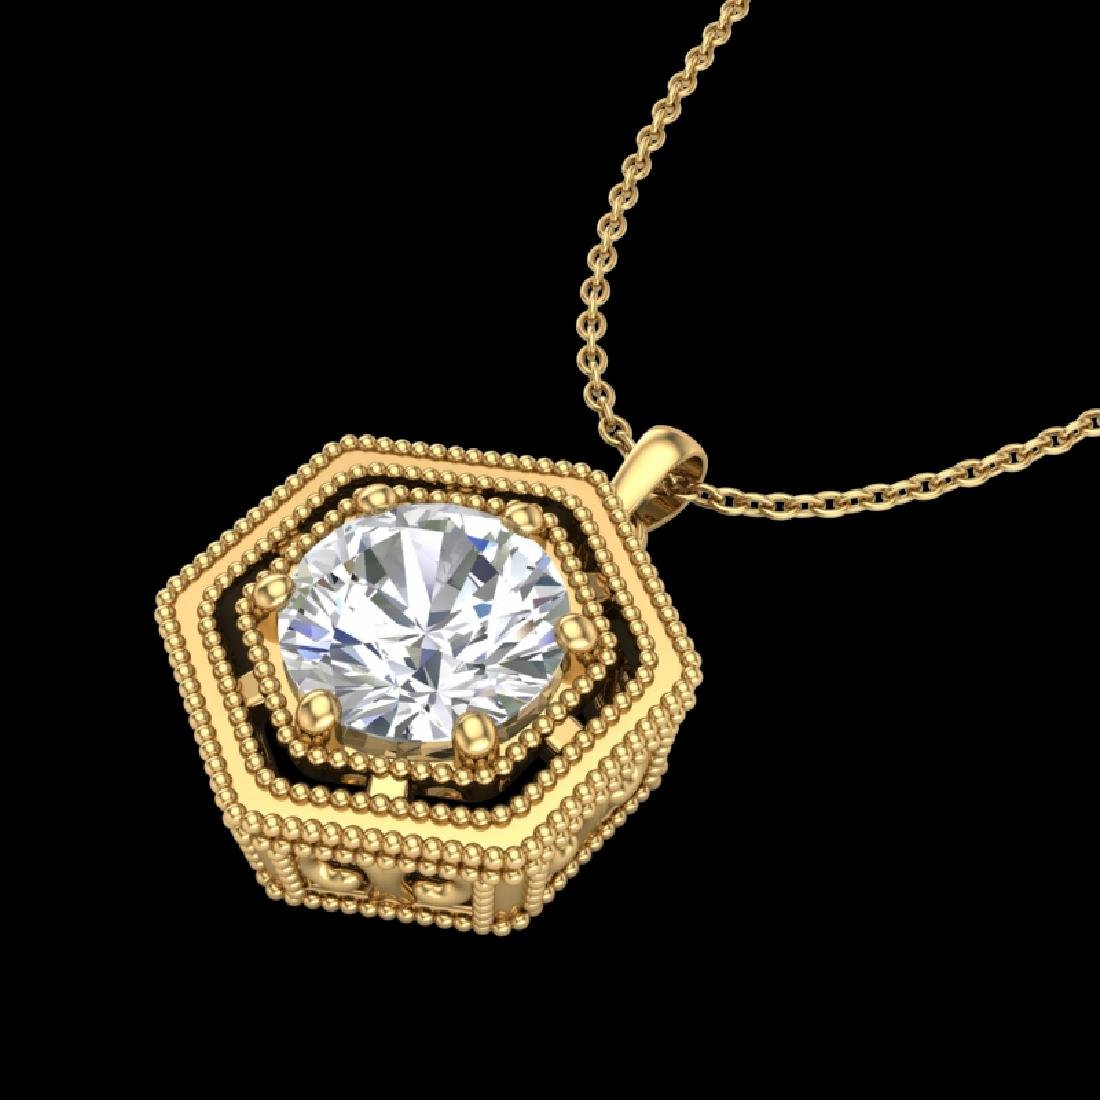 0.76 CTW VS/SI Diamond Solitaire Art Deco Necklace 18K - 2